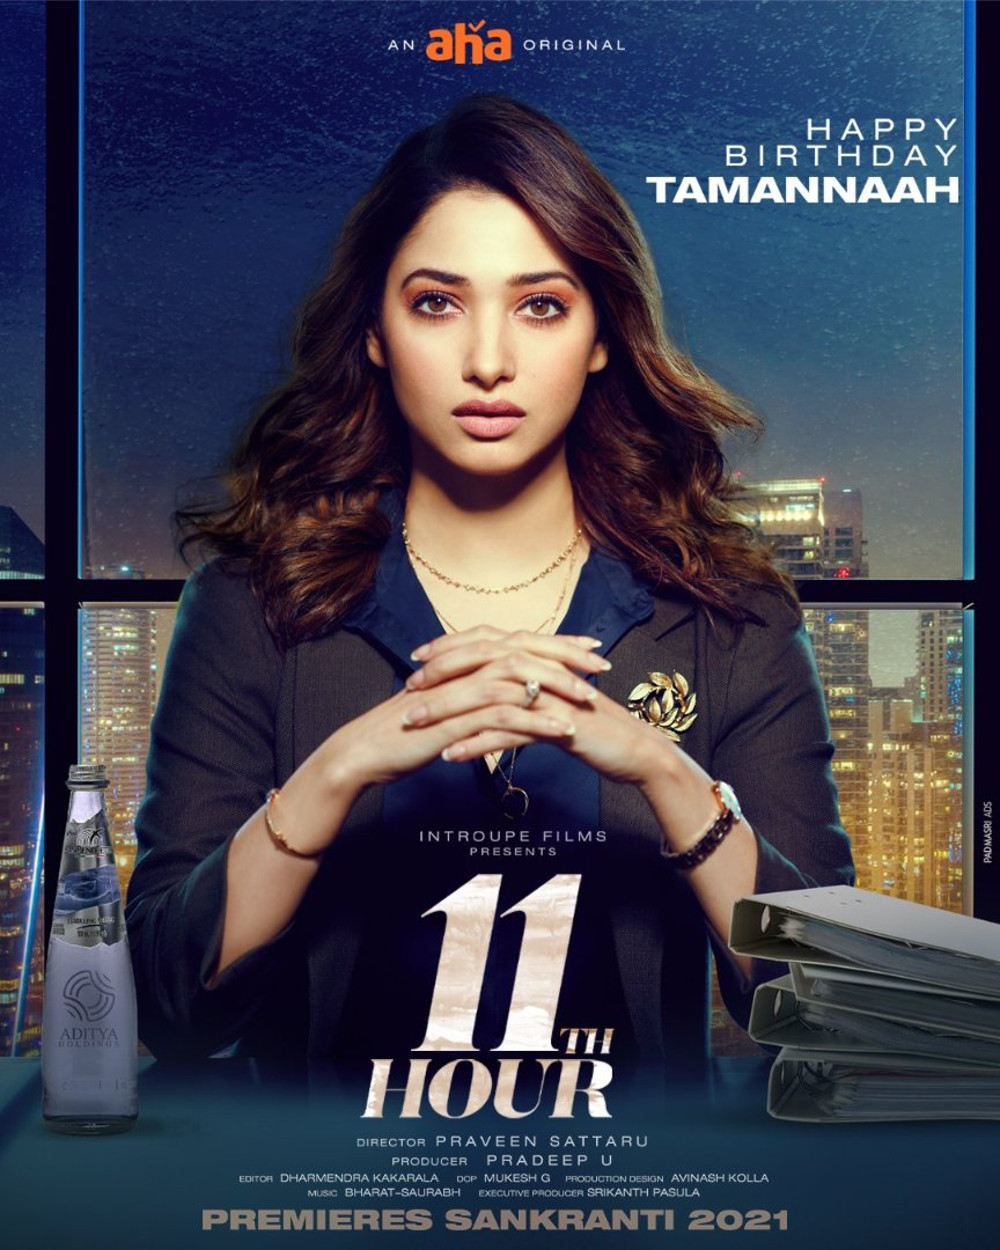 11th Hour Movie Team wishes to Tamannaah Birthday Poster